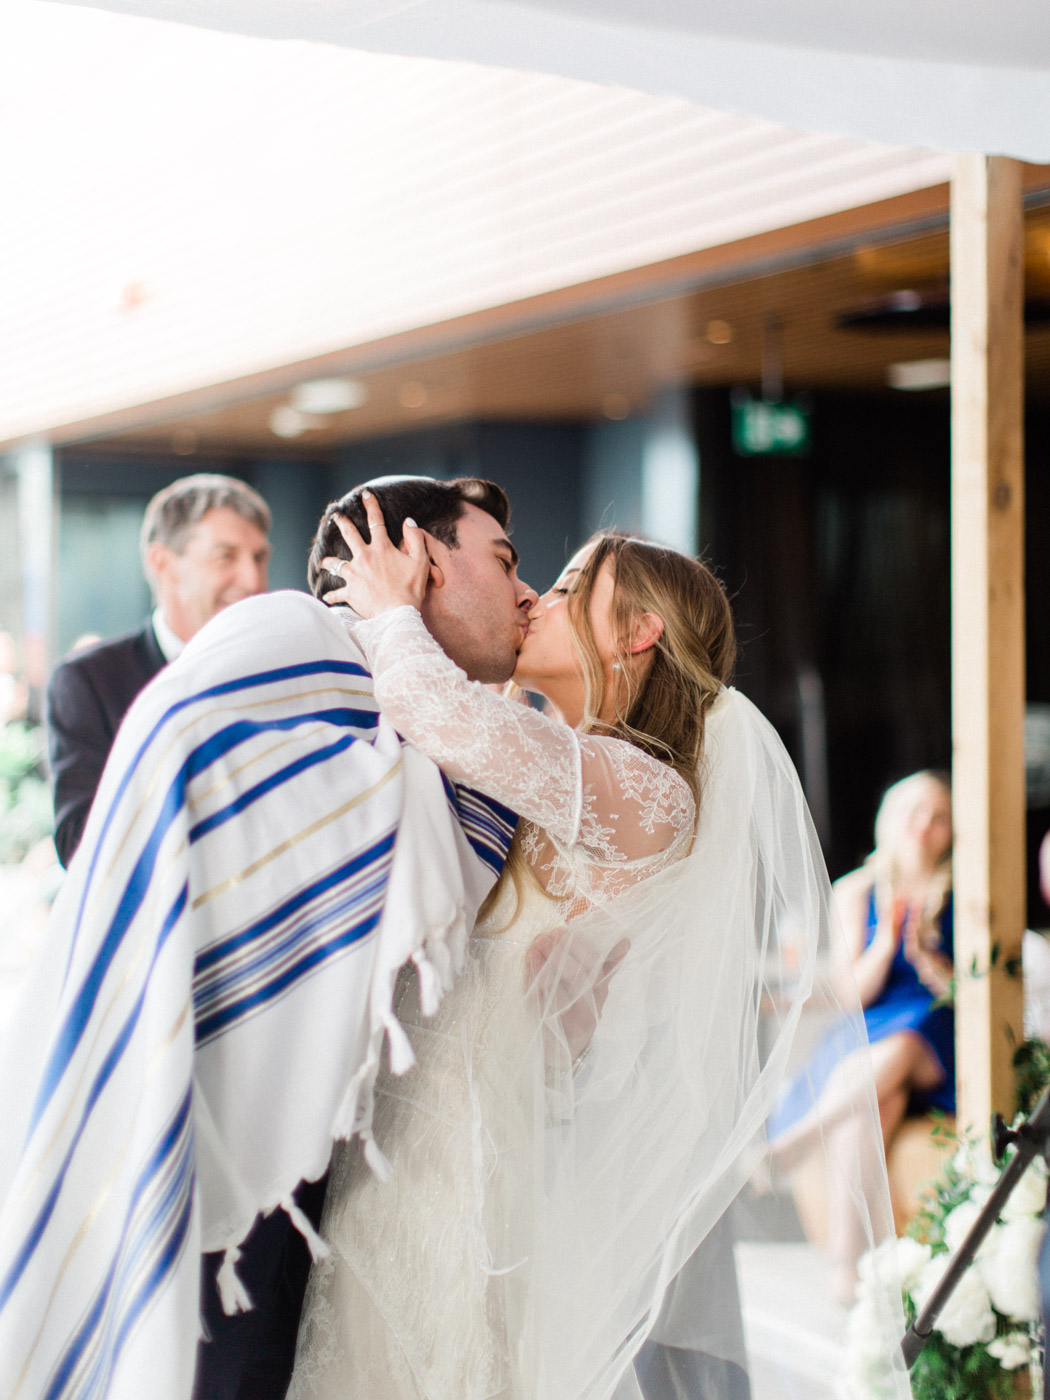 -	bride and groom getting married under chuppah at their traditional jewish wedding. Captured by Toronto wedding photographer Corynn Fowler Photography